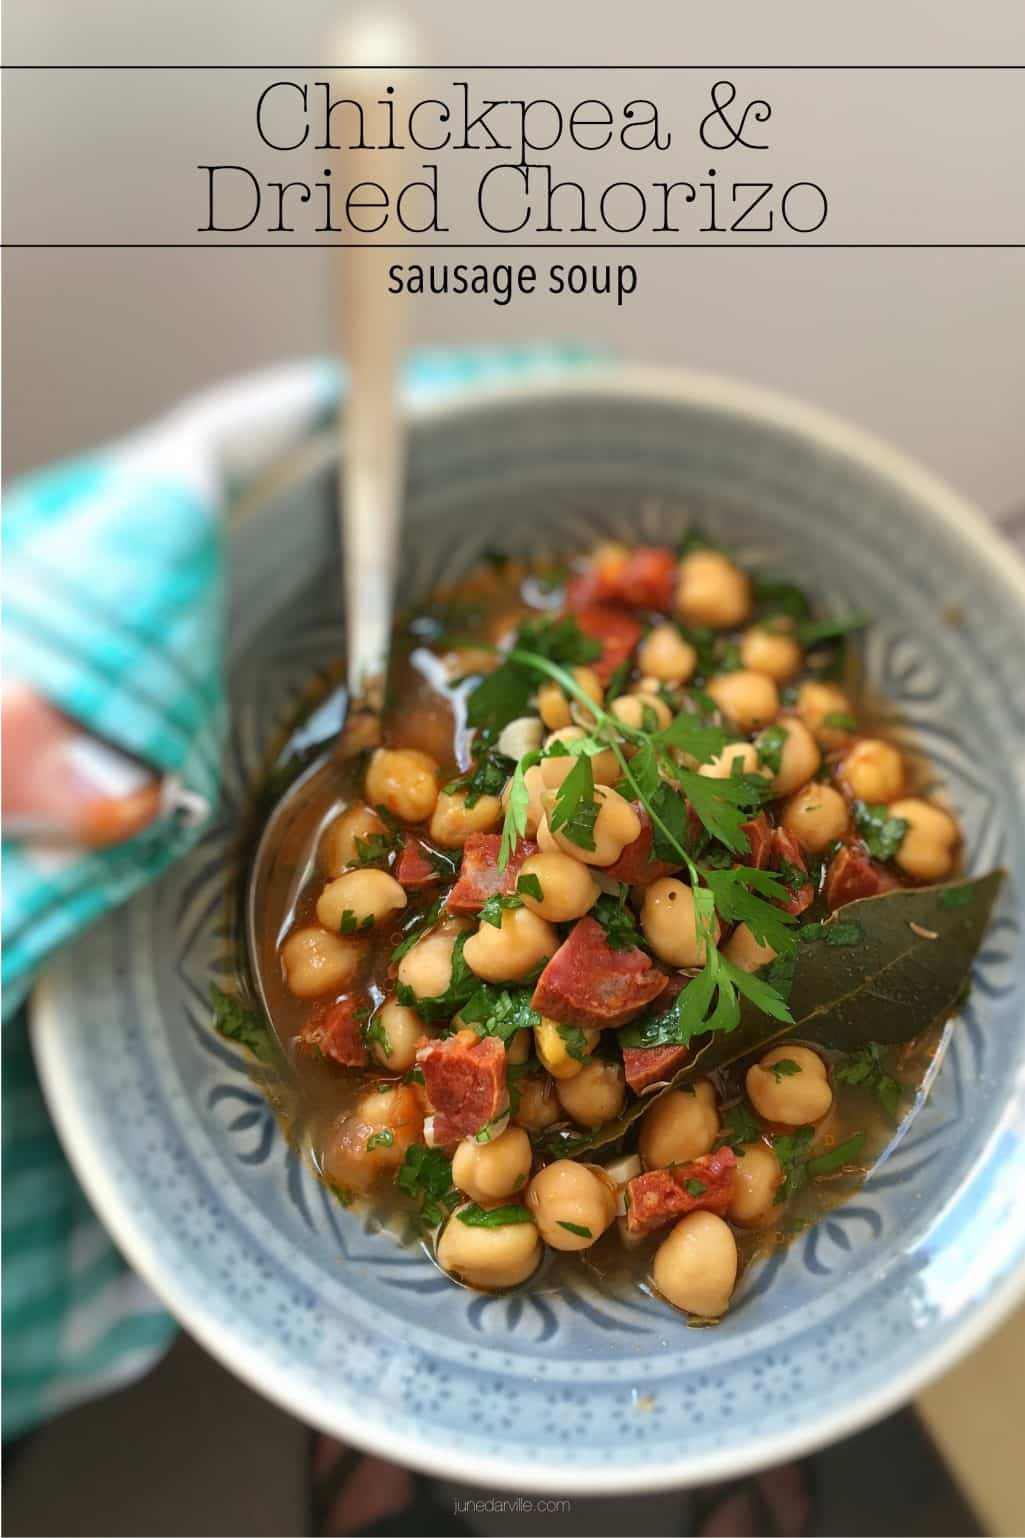 Canned chickpeas, dried chorizo sausage, water, garlic, ground cumin and coriander: here's a spicy 30-minute chickpea chorizo soup!